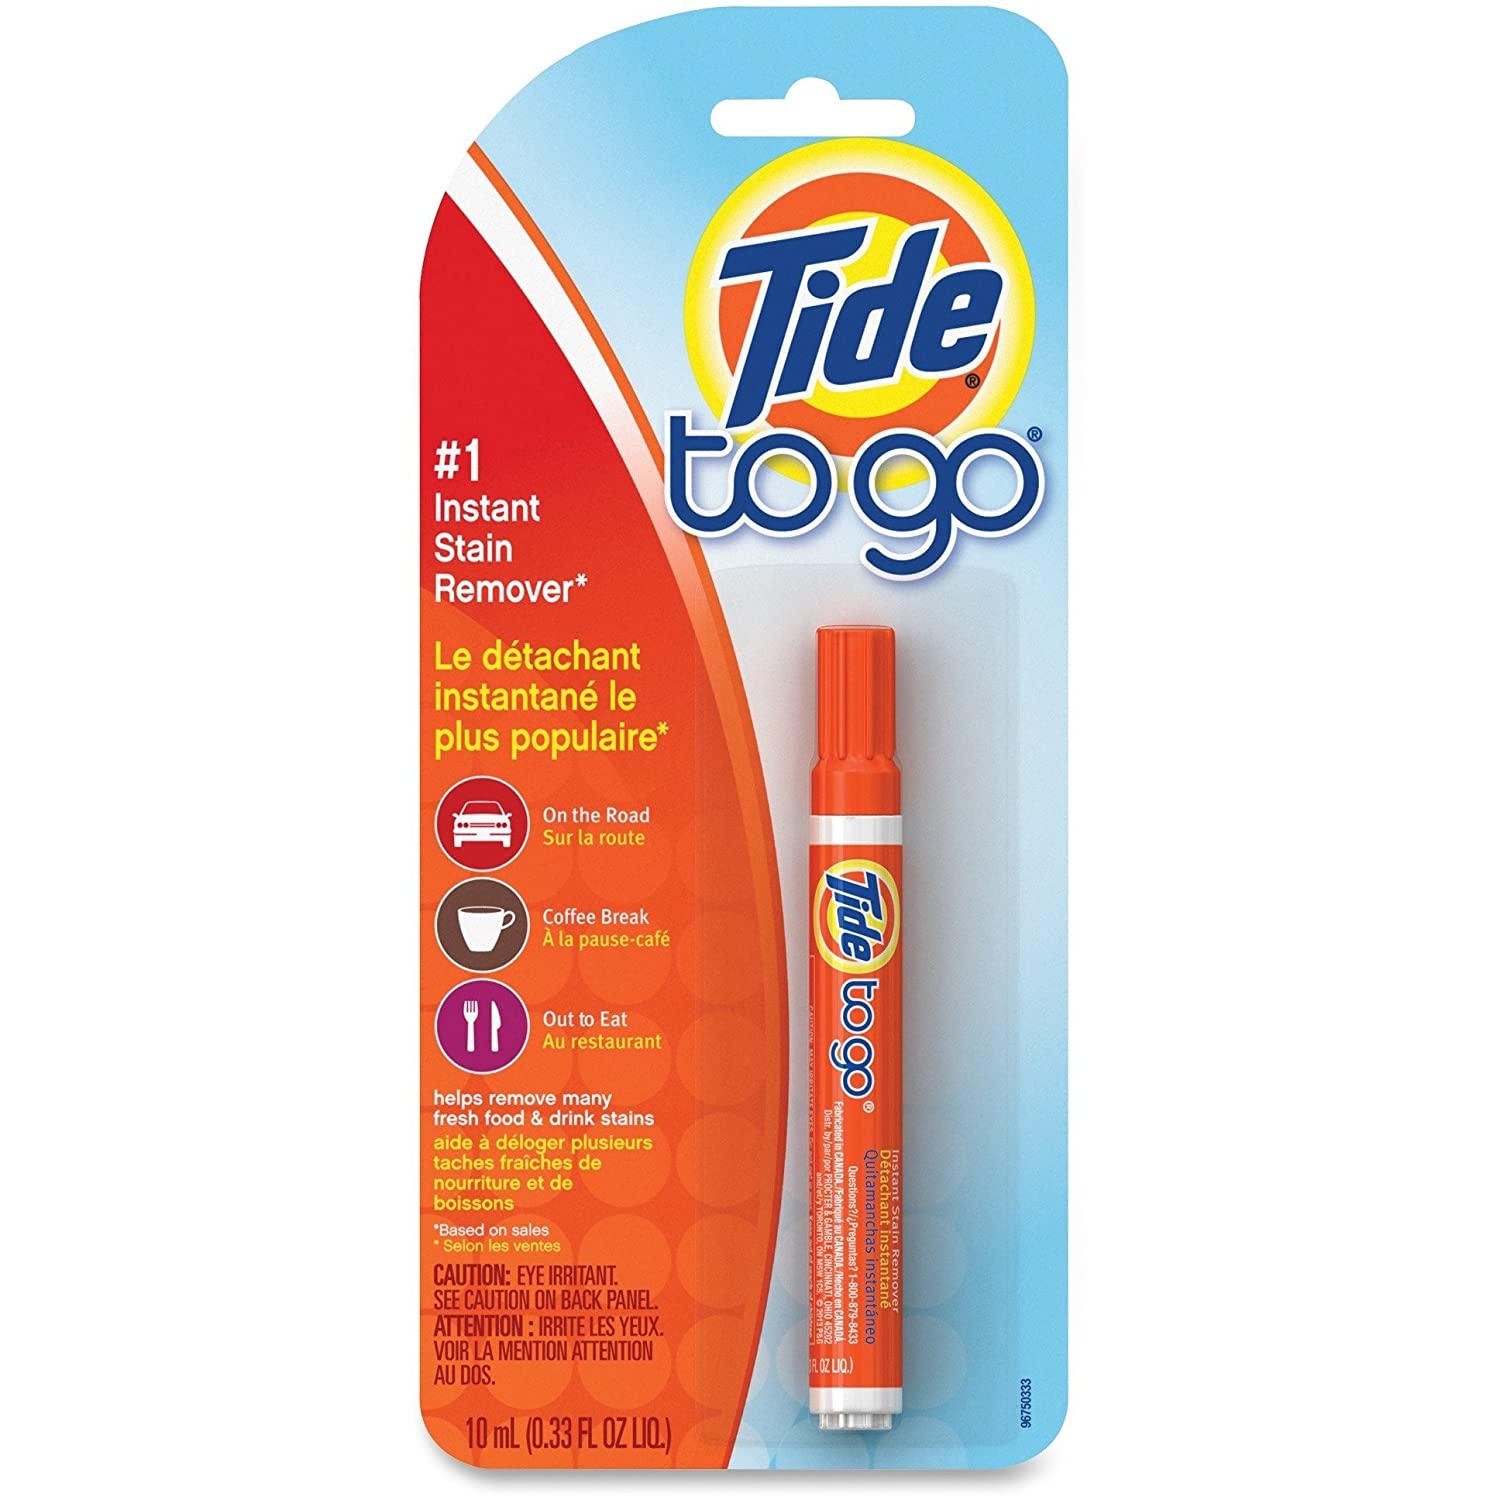 Amazon.com: Tide 01870 To Go Stain Remover Pen, 0.338 oz Pen: Kitchen & Dining